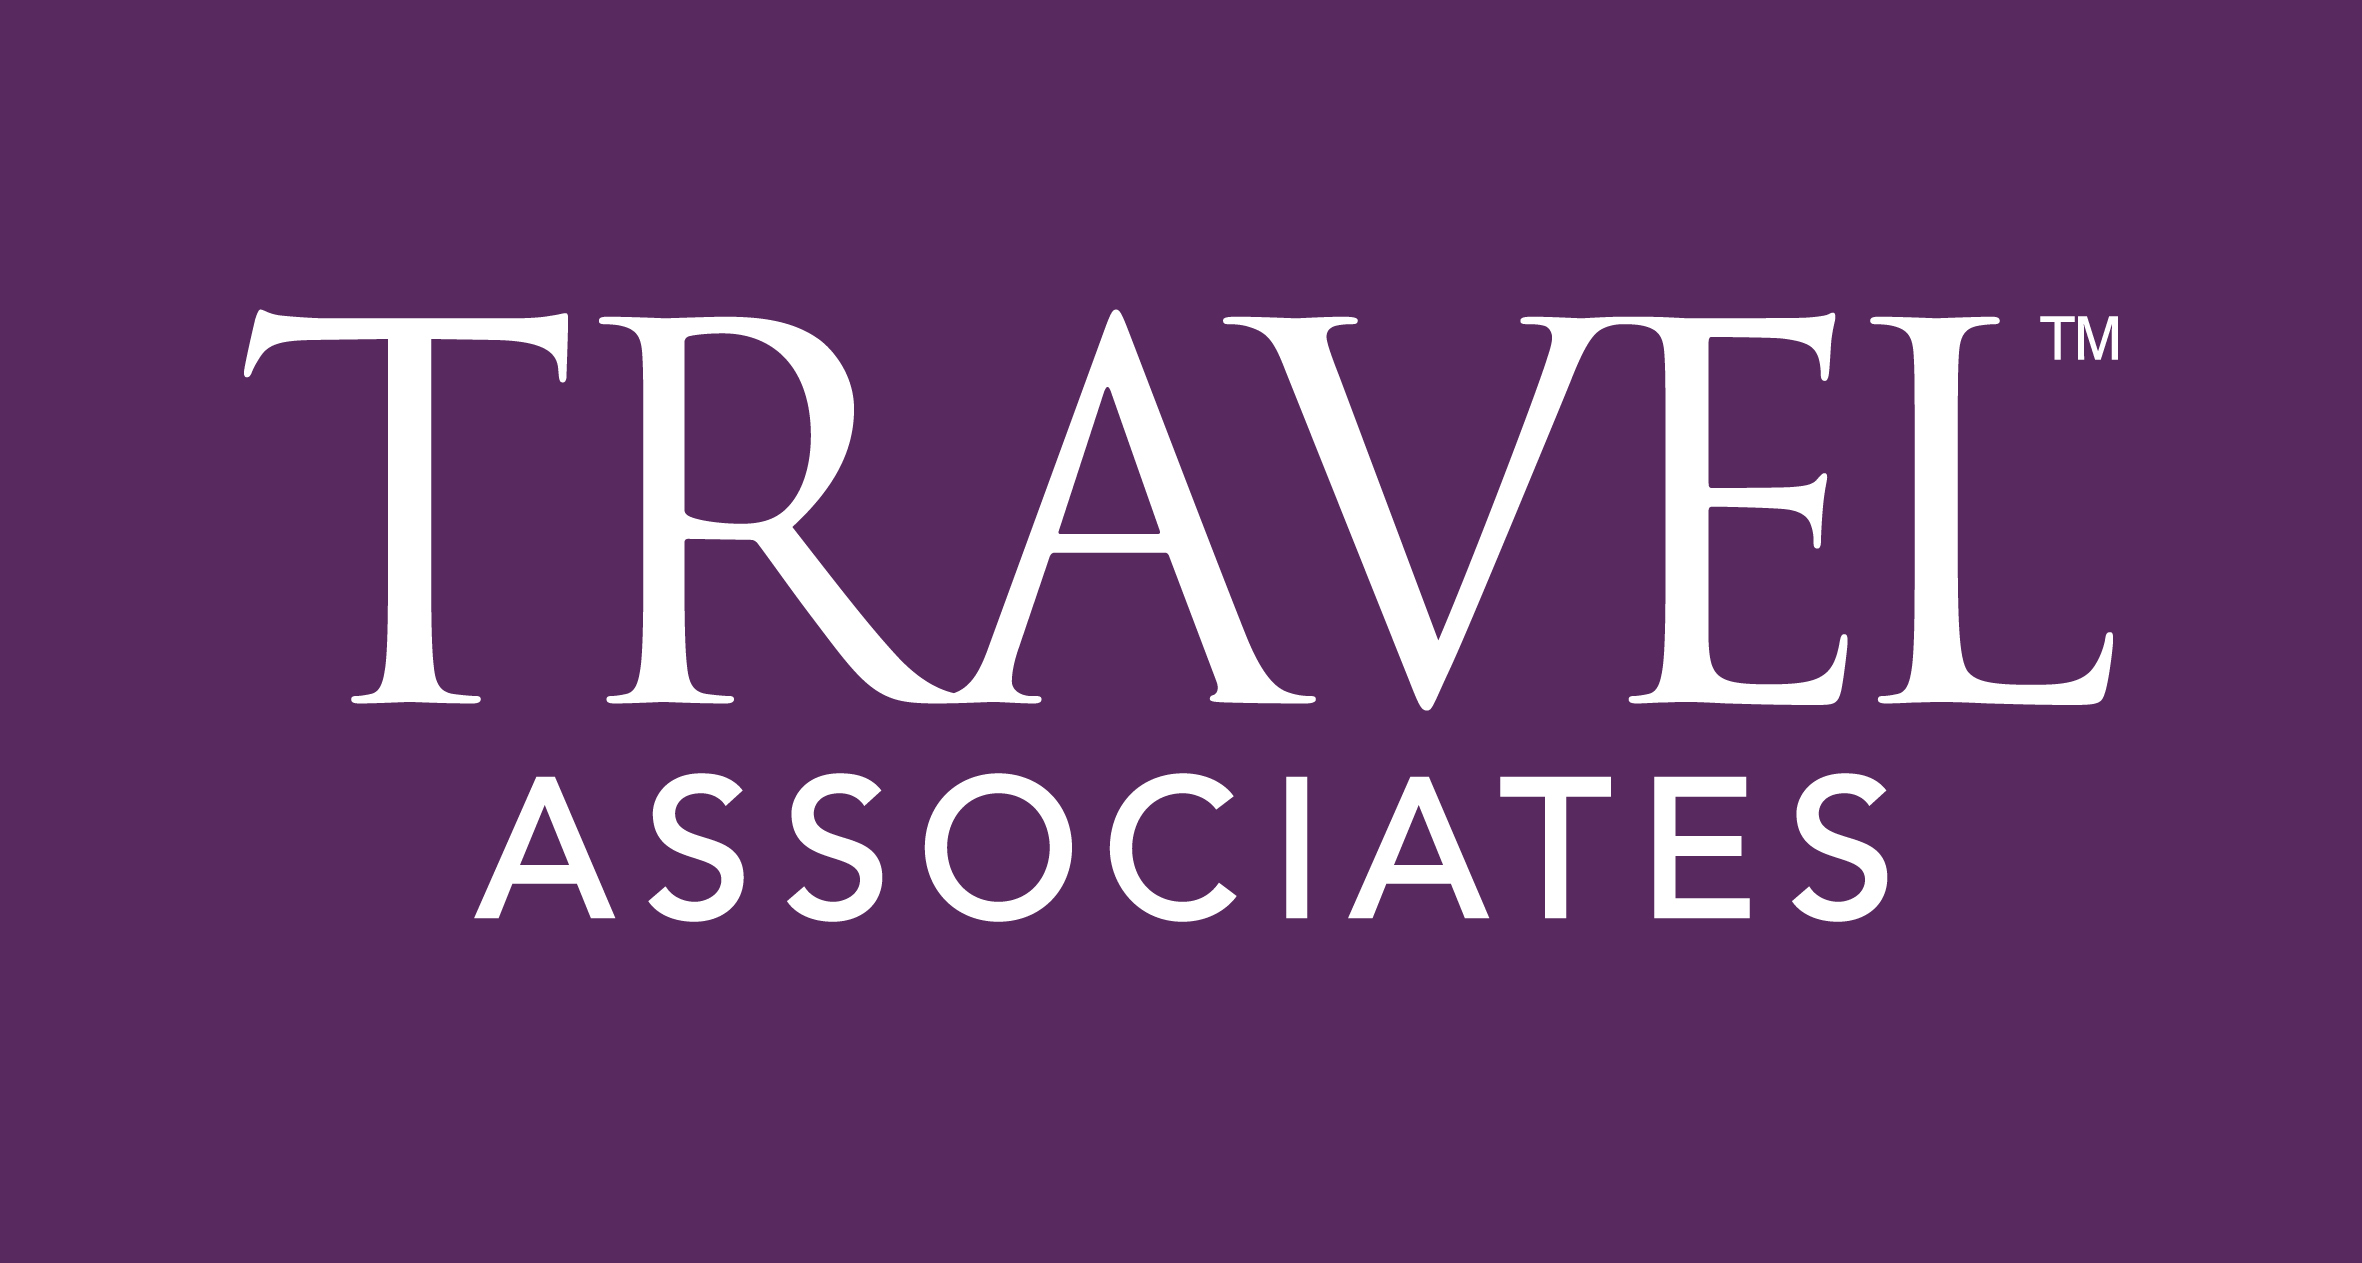 TRAVEL ASSOCIATES Adelaide Logo